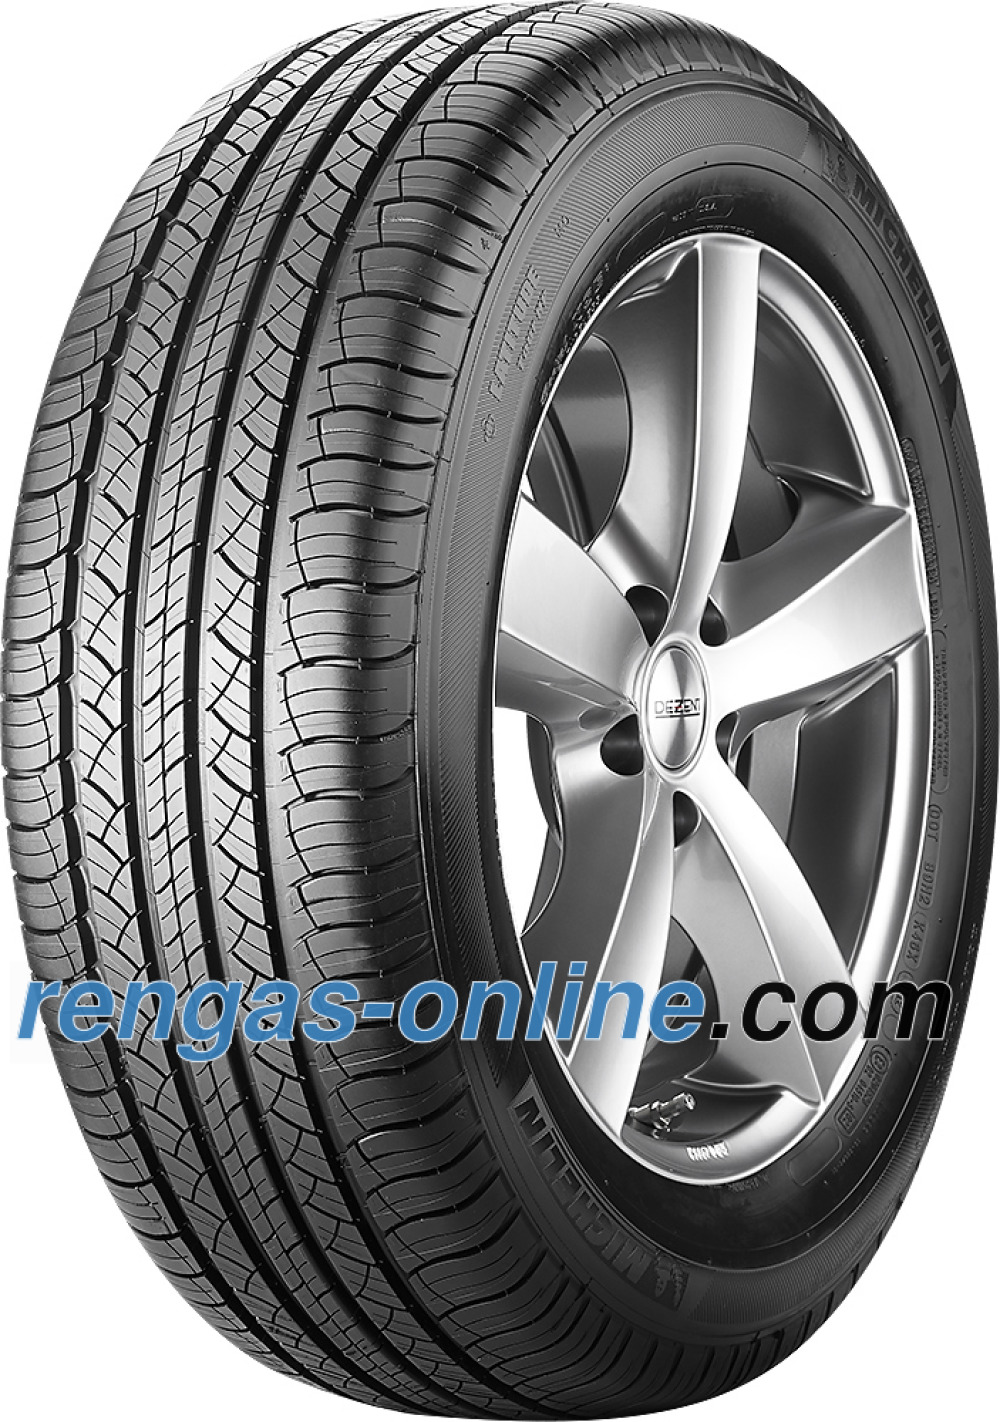 michelin-latitude-tour-hp-23555-r19-101v-grnx